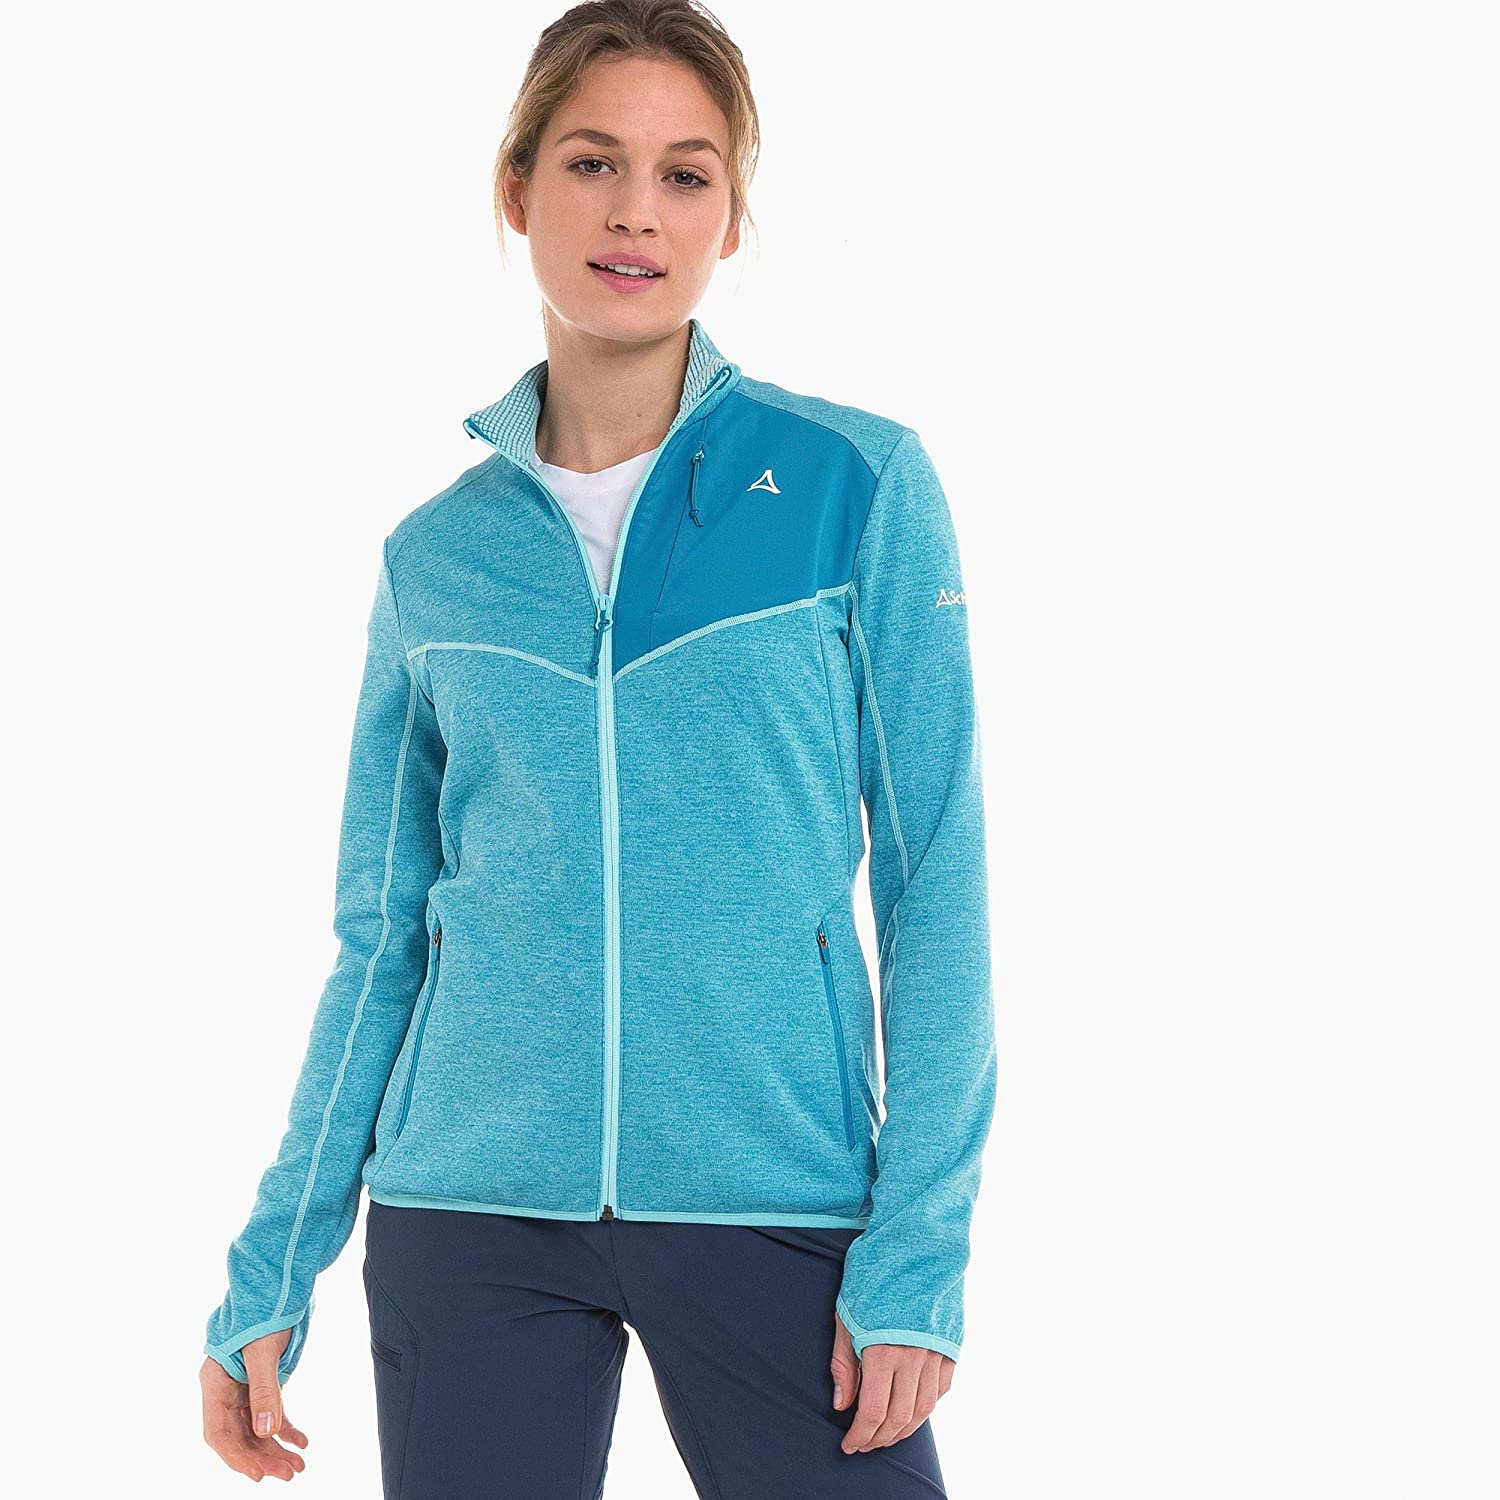 Schöffel Damen Fleece Jacket angel blue